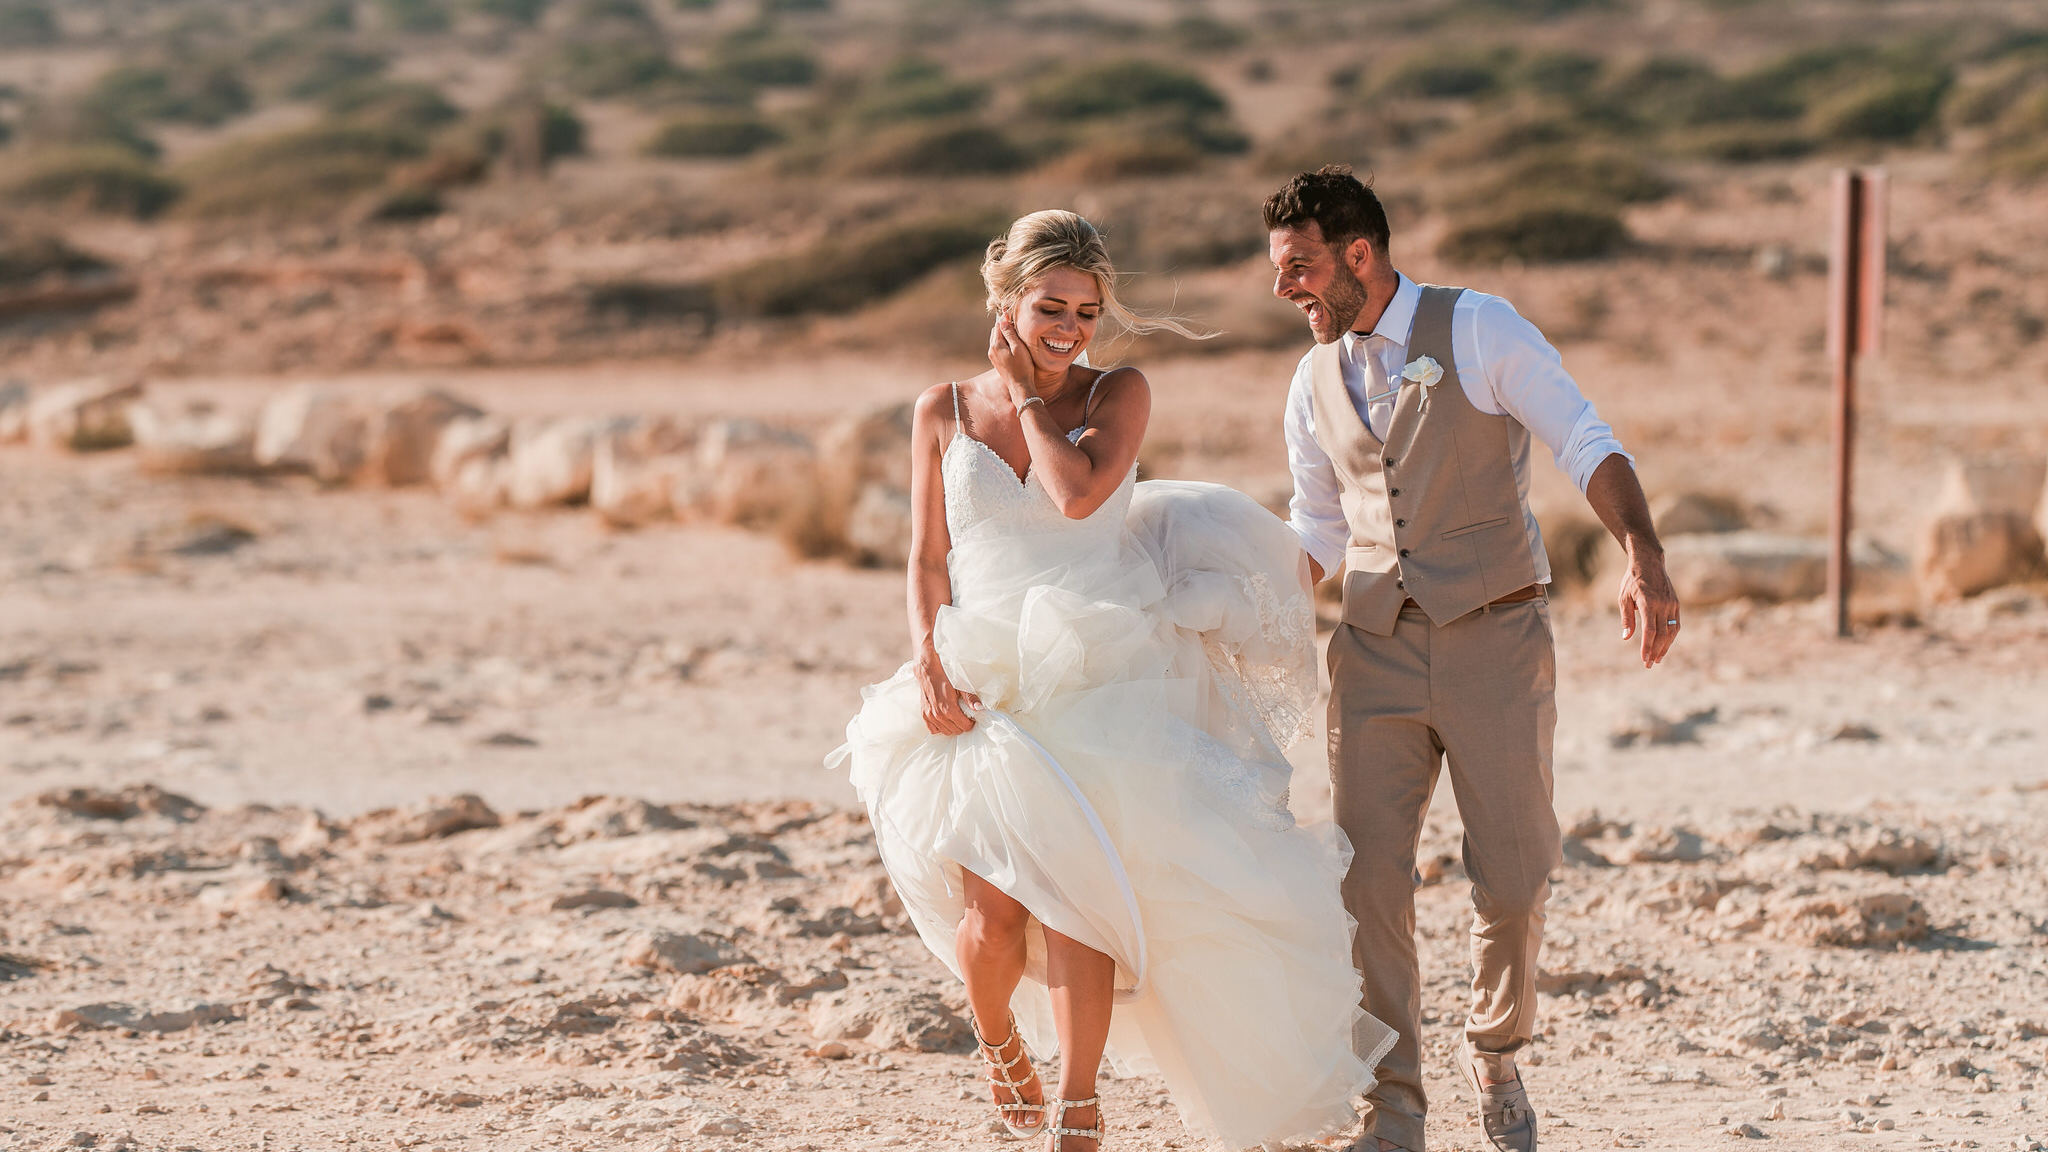 Liopetro - Cyprus Wedding Photographer 19